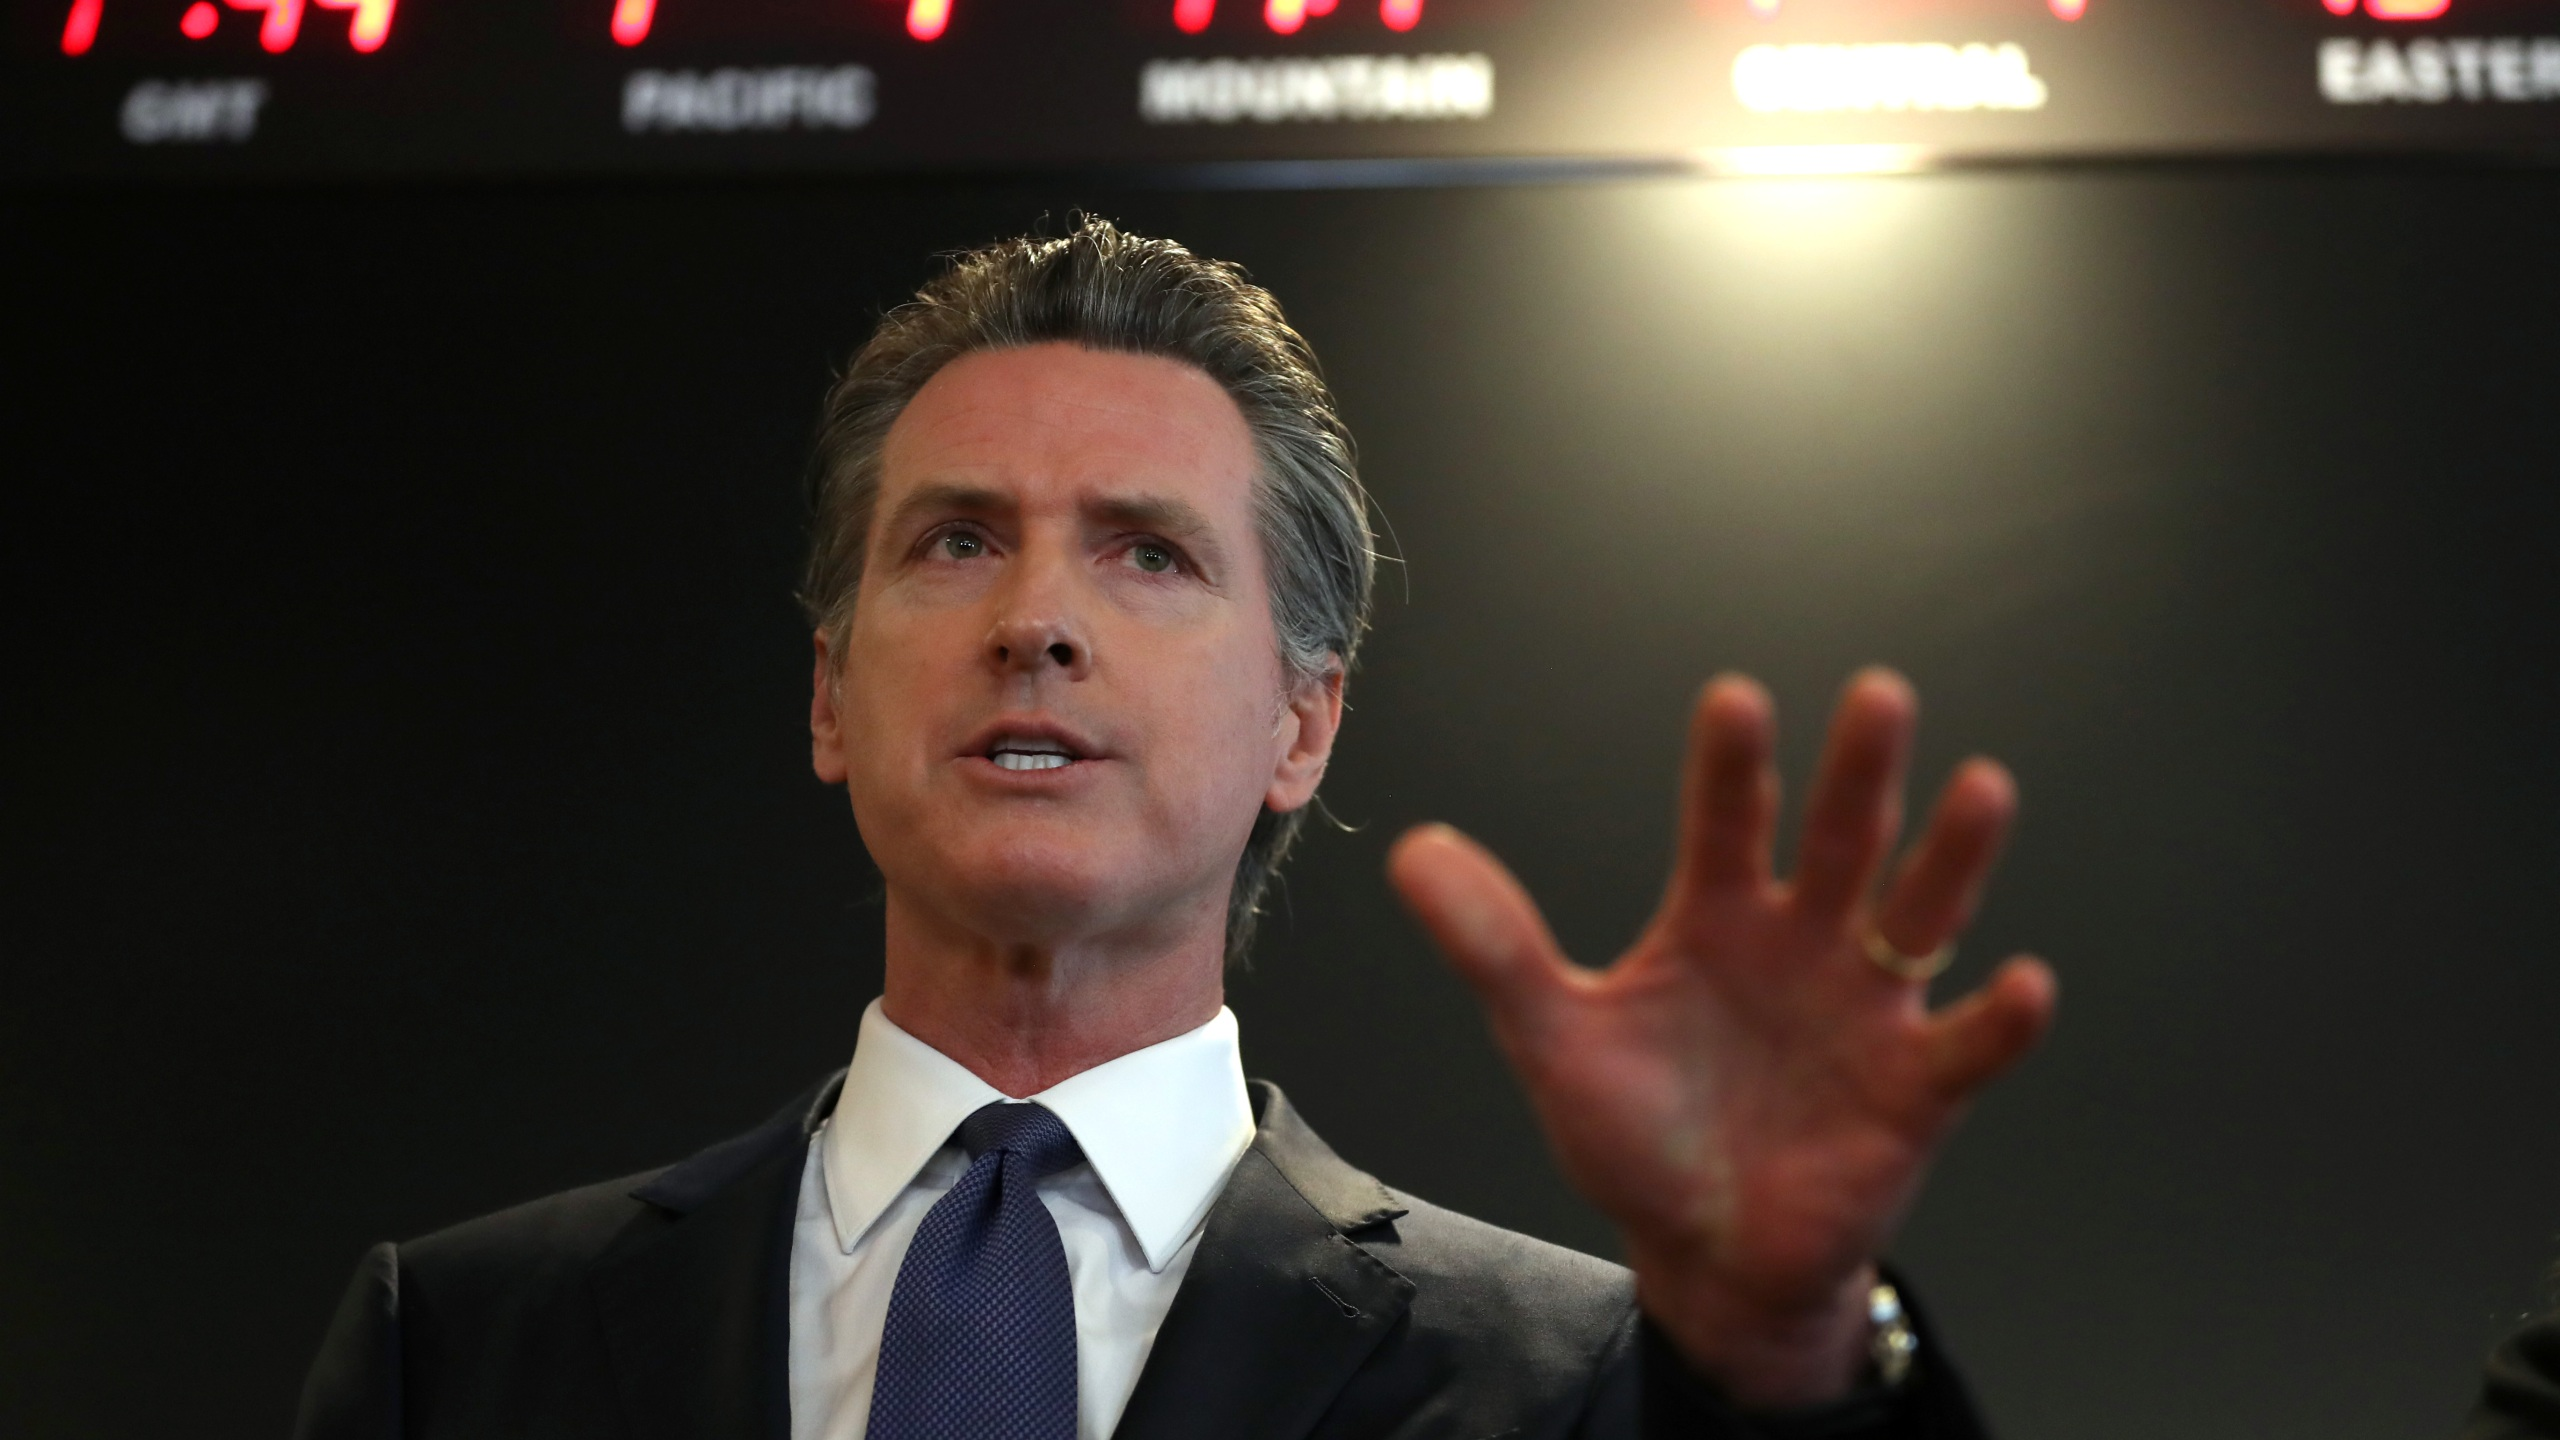 Gov. Gavin Newsom speaks during a news conference at the California Department of Public Health on Feb. 27, 2020, in Sacramento. (Justin Sullivan/Getty Images)